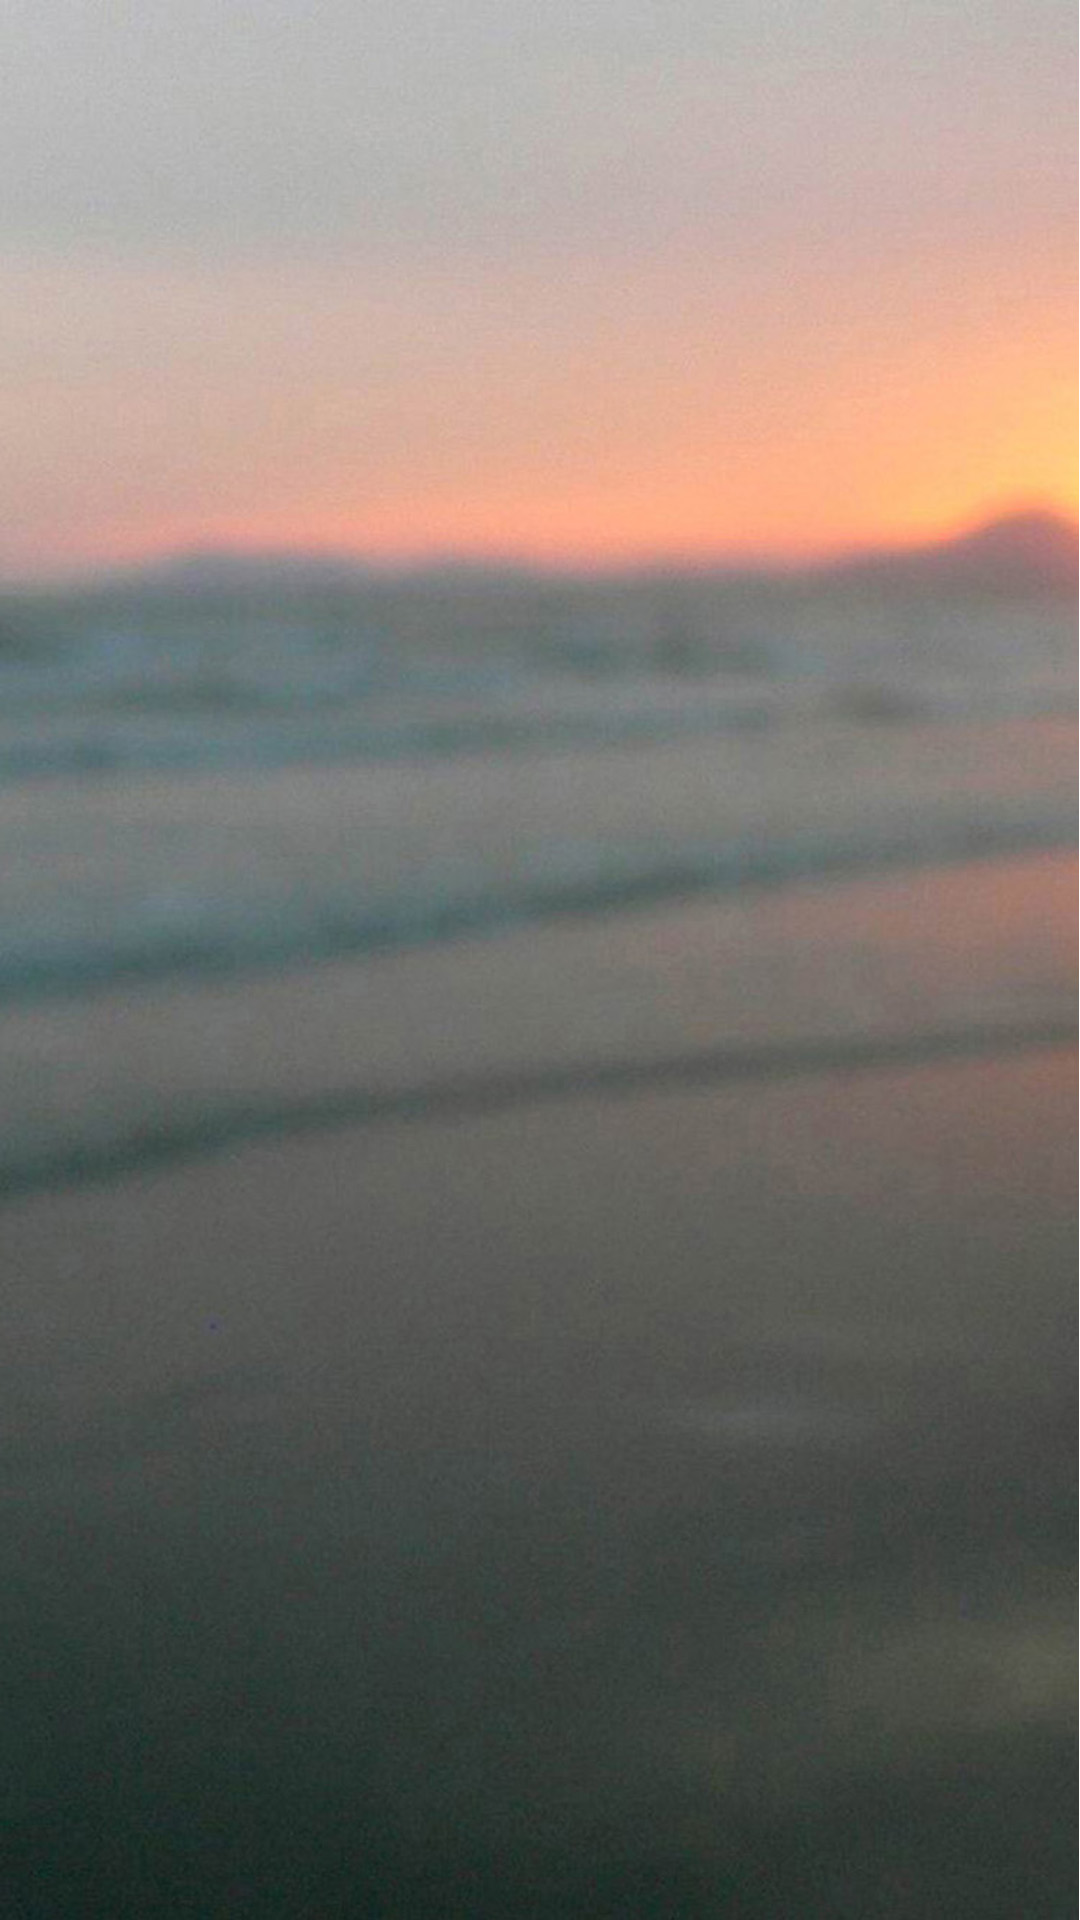 Blurry Beach Sunset Android wallpaper